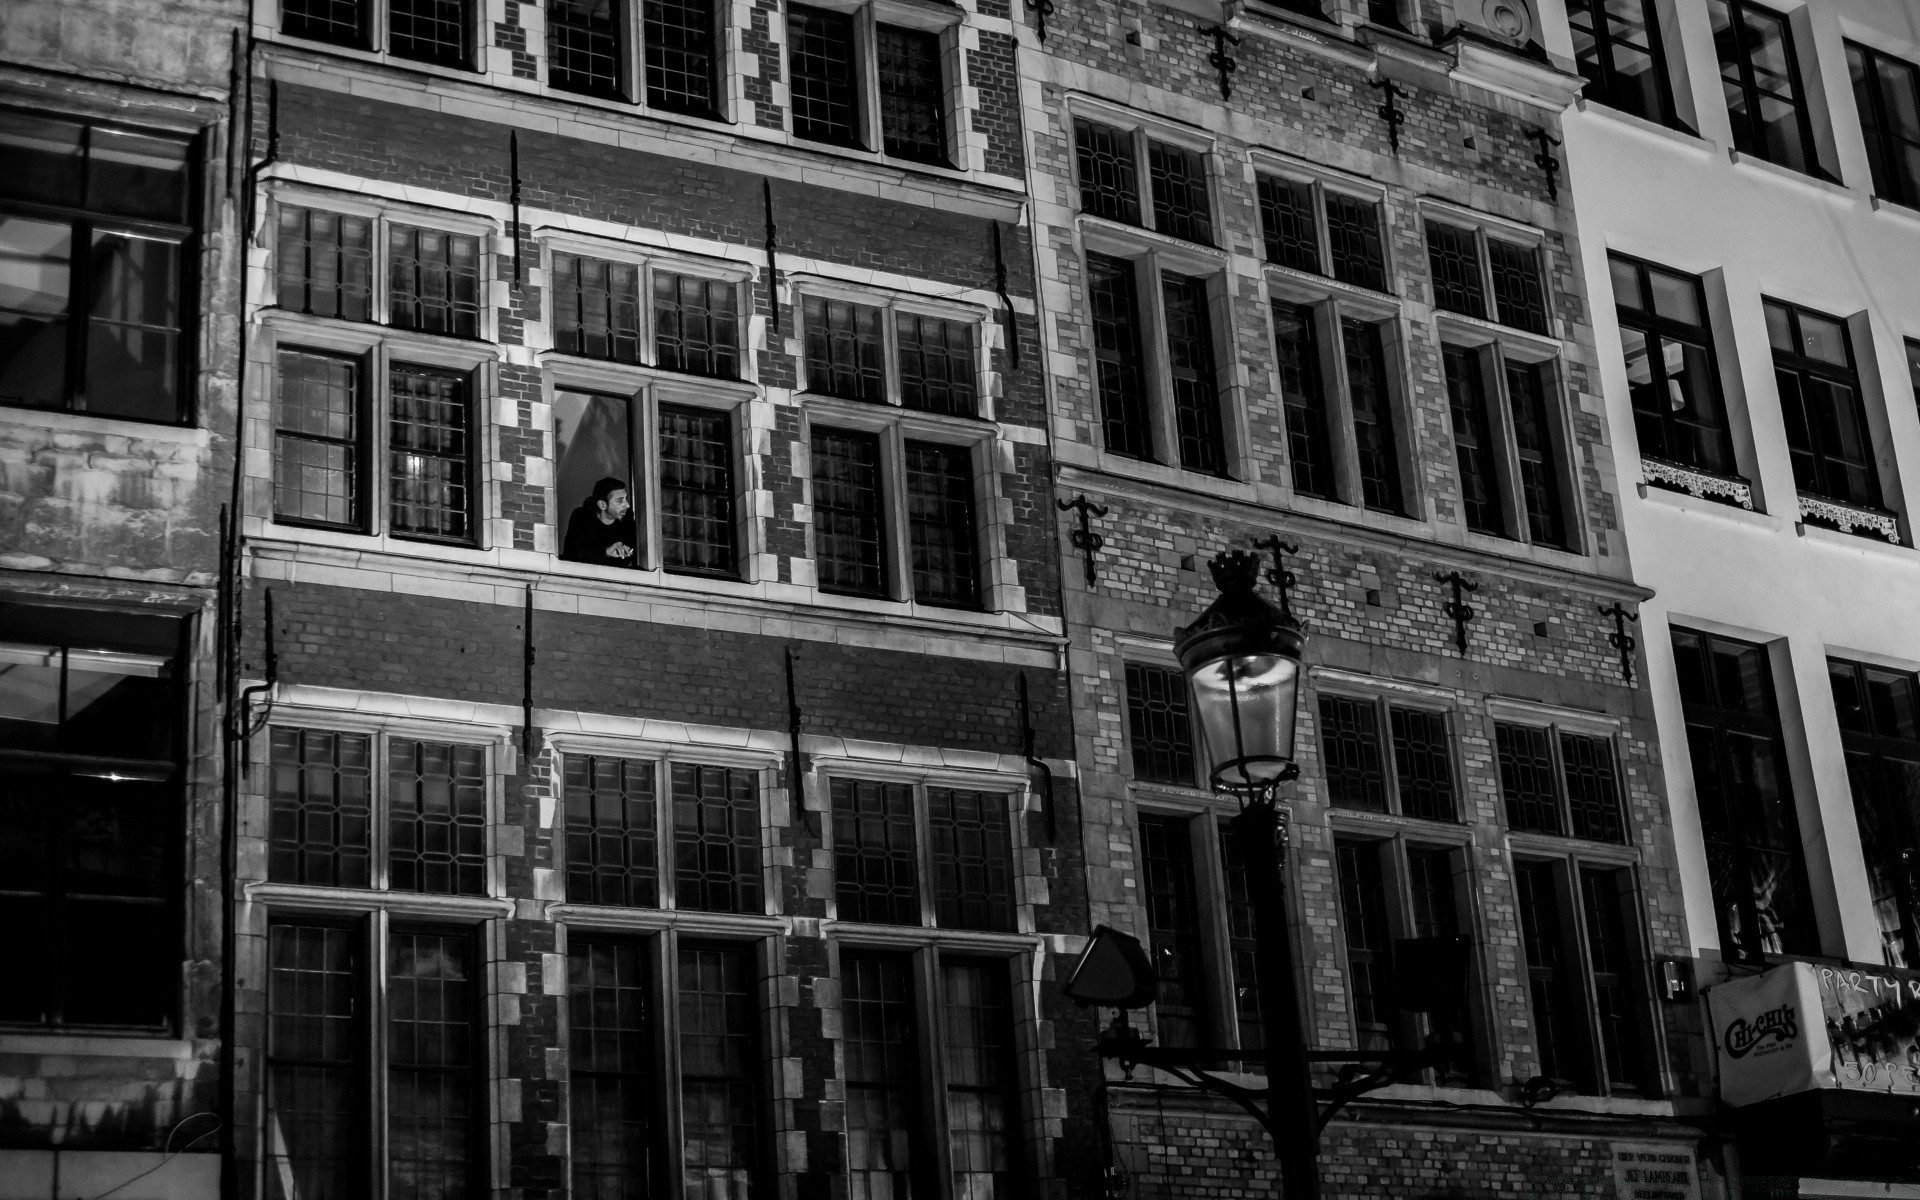 Antwerp City Buildings Black And White Desktop Wallpapers For Free